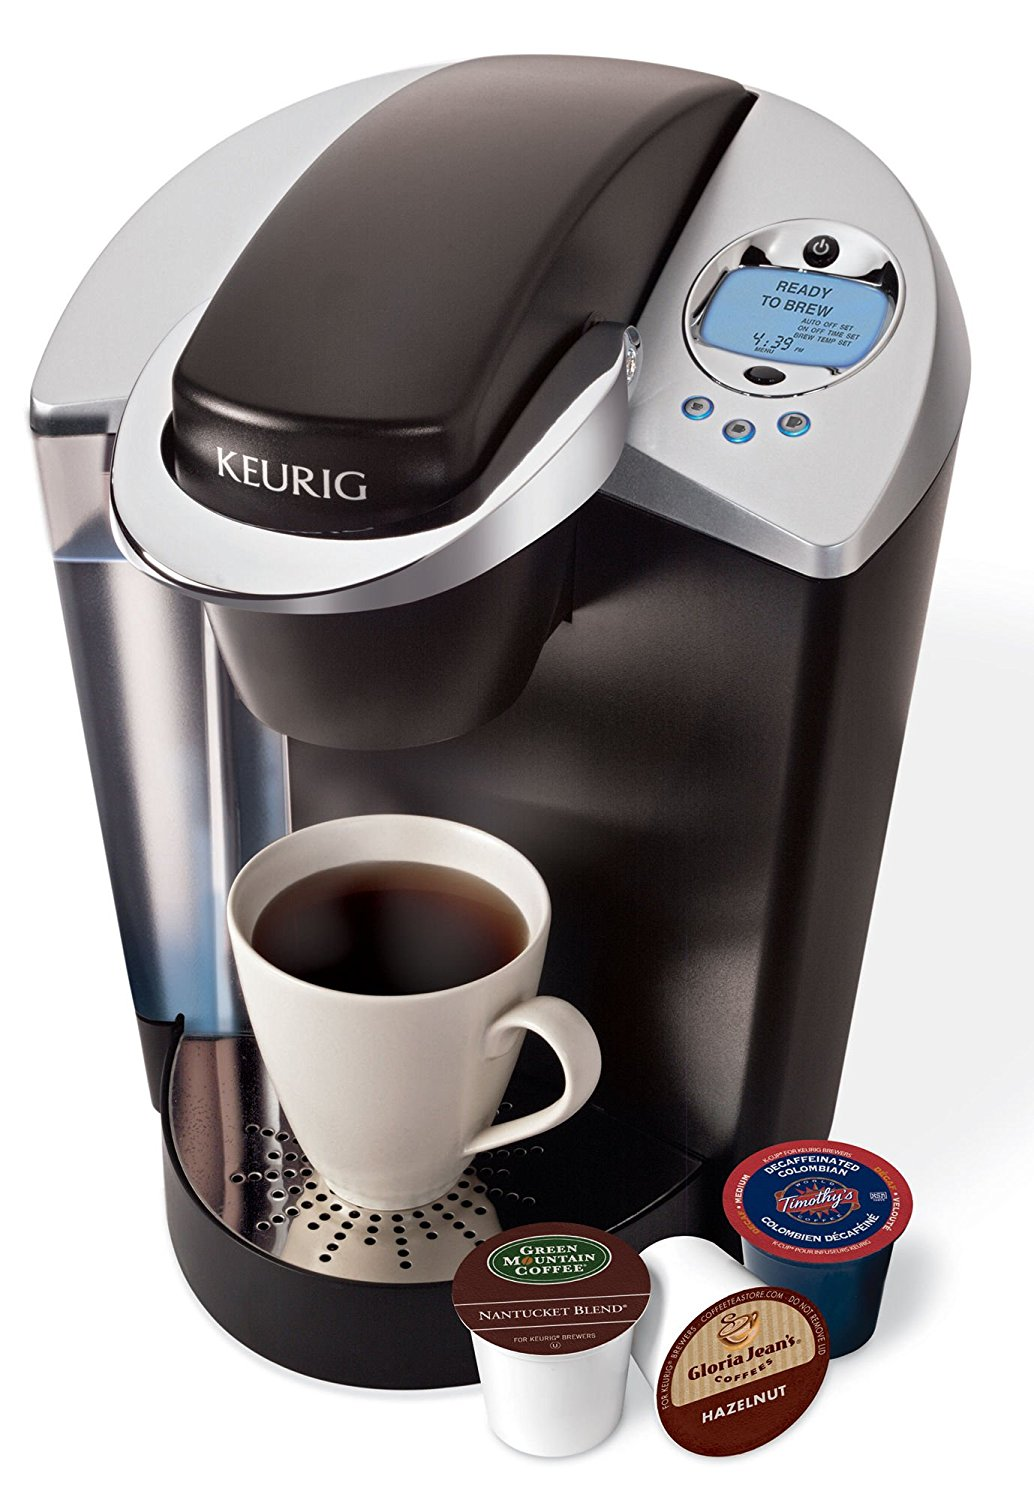 Keurig K60/K65 Special Edition & Signature Brewers, Single-Cup Brewing System, 60 Ounce, Brown